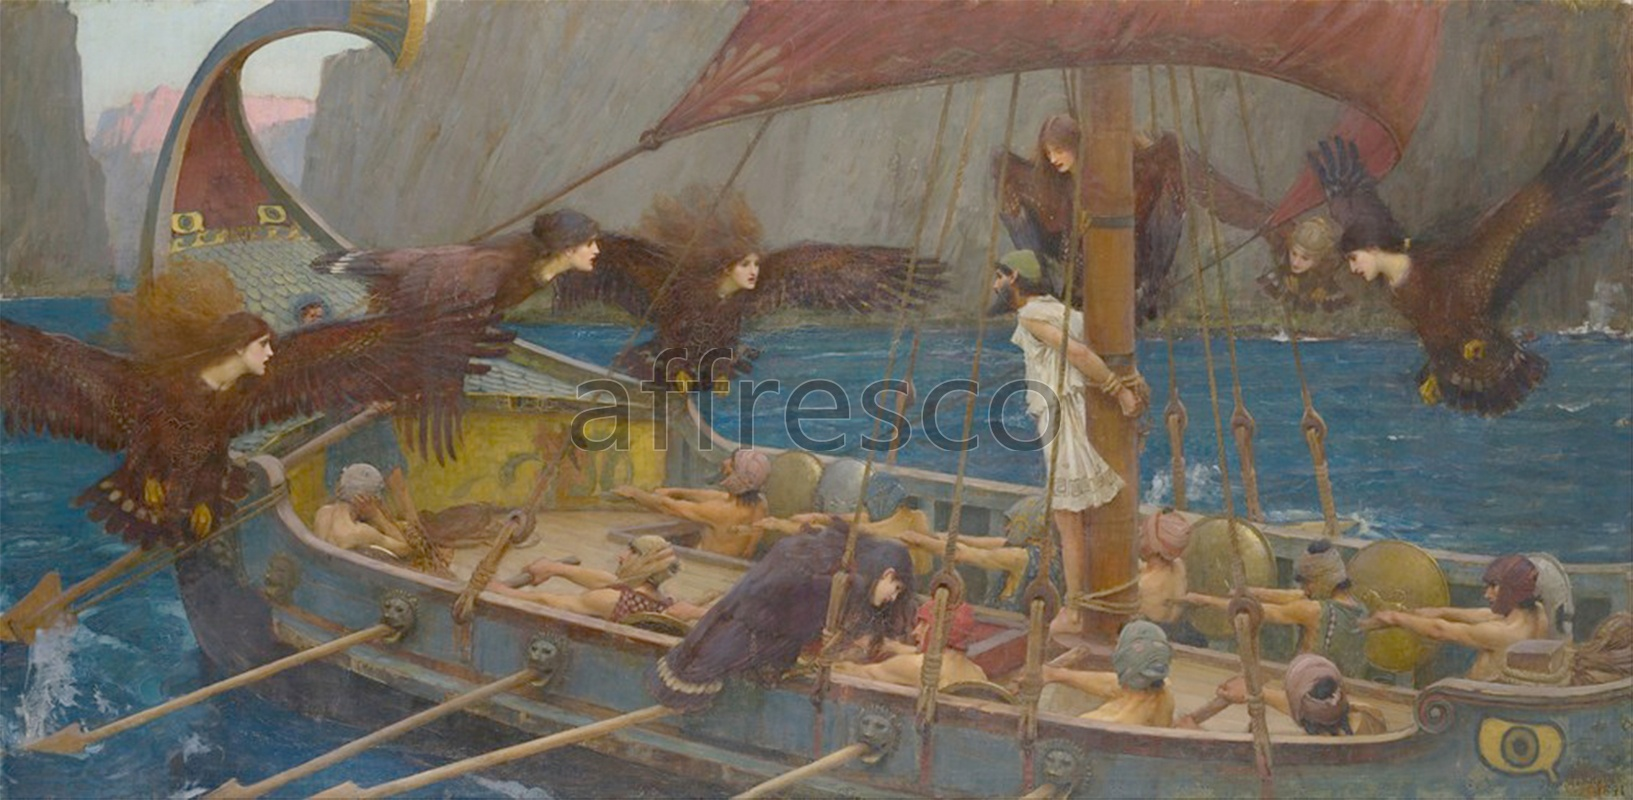 Classical antiquity themes | John William Waterhouse Ulysses and the Sirens | Affresco Factory